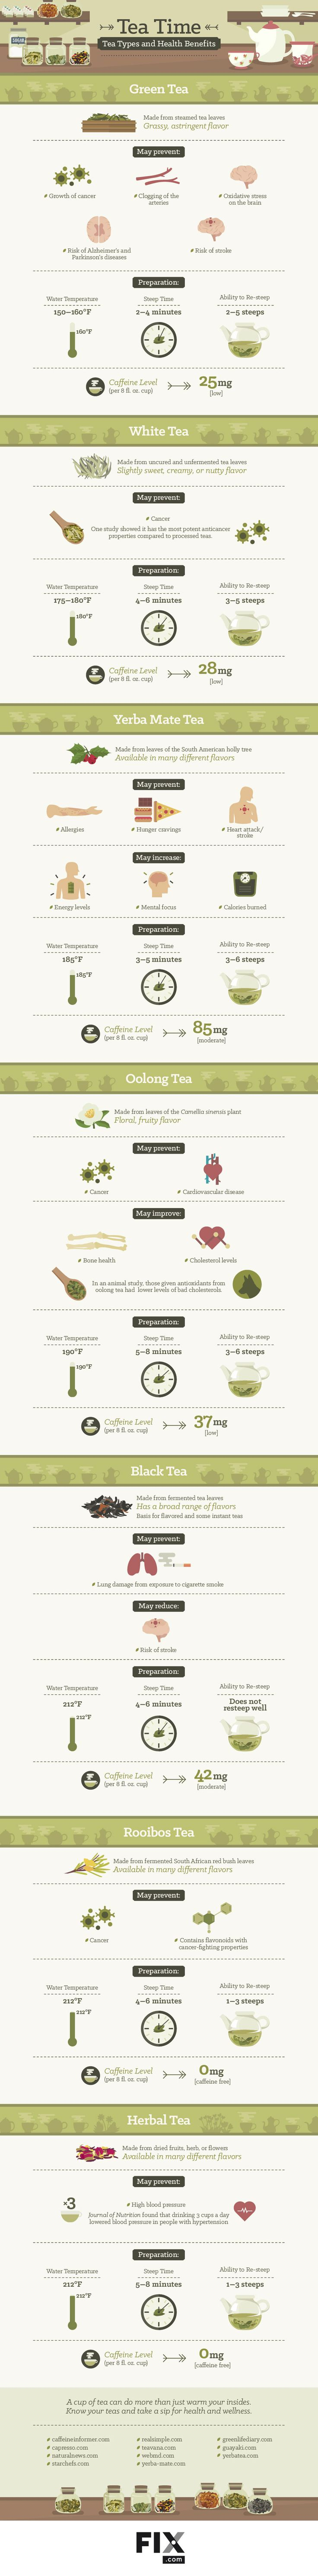 Tea Time Types of Tea and Their Health Benefits #infographic ~ Visualistan